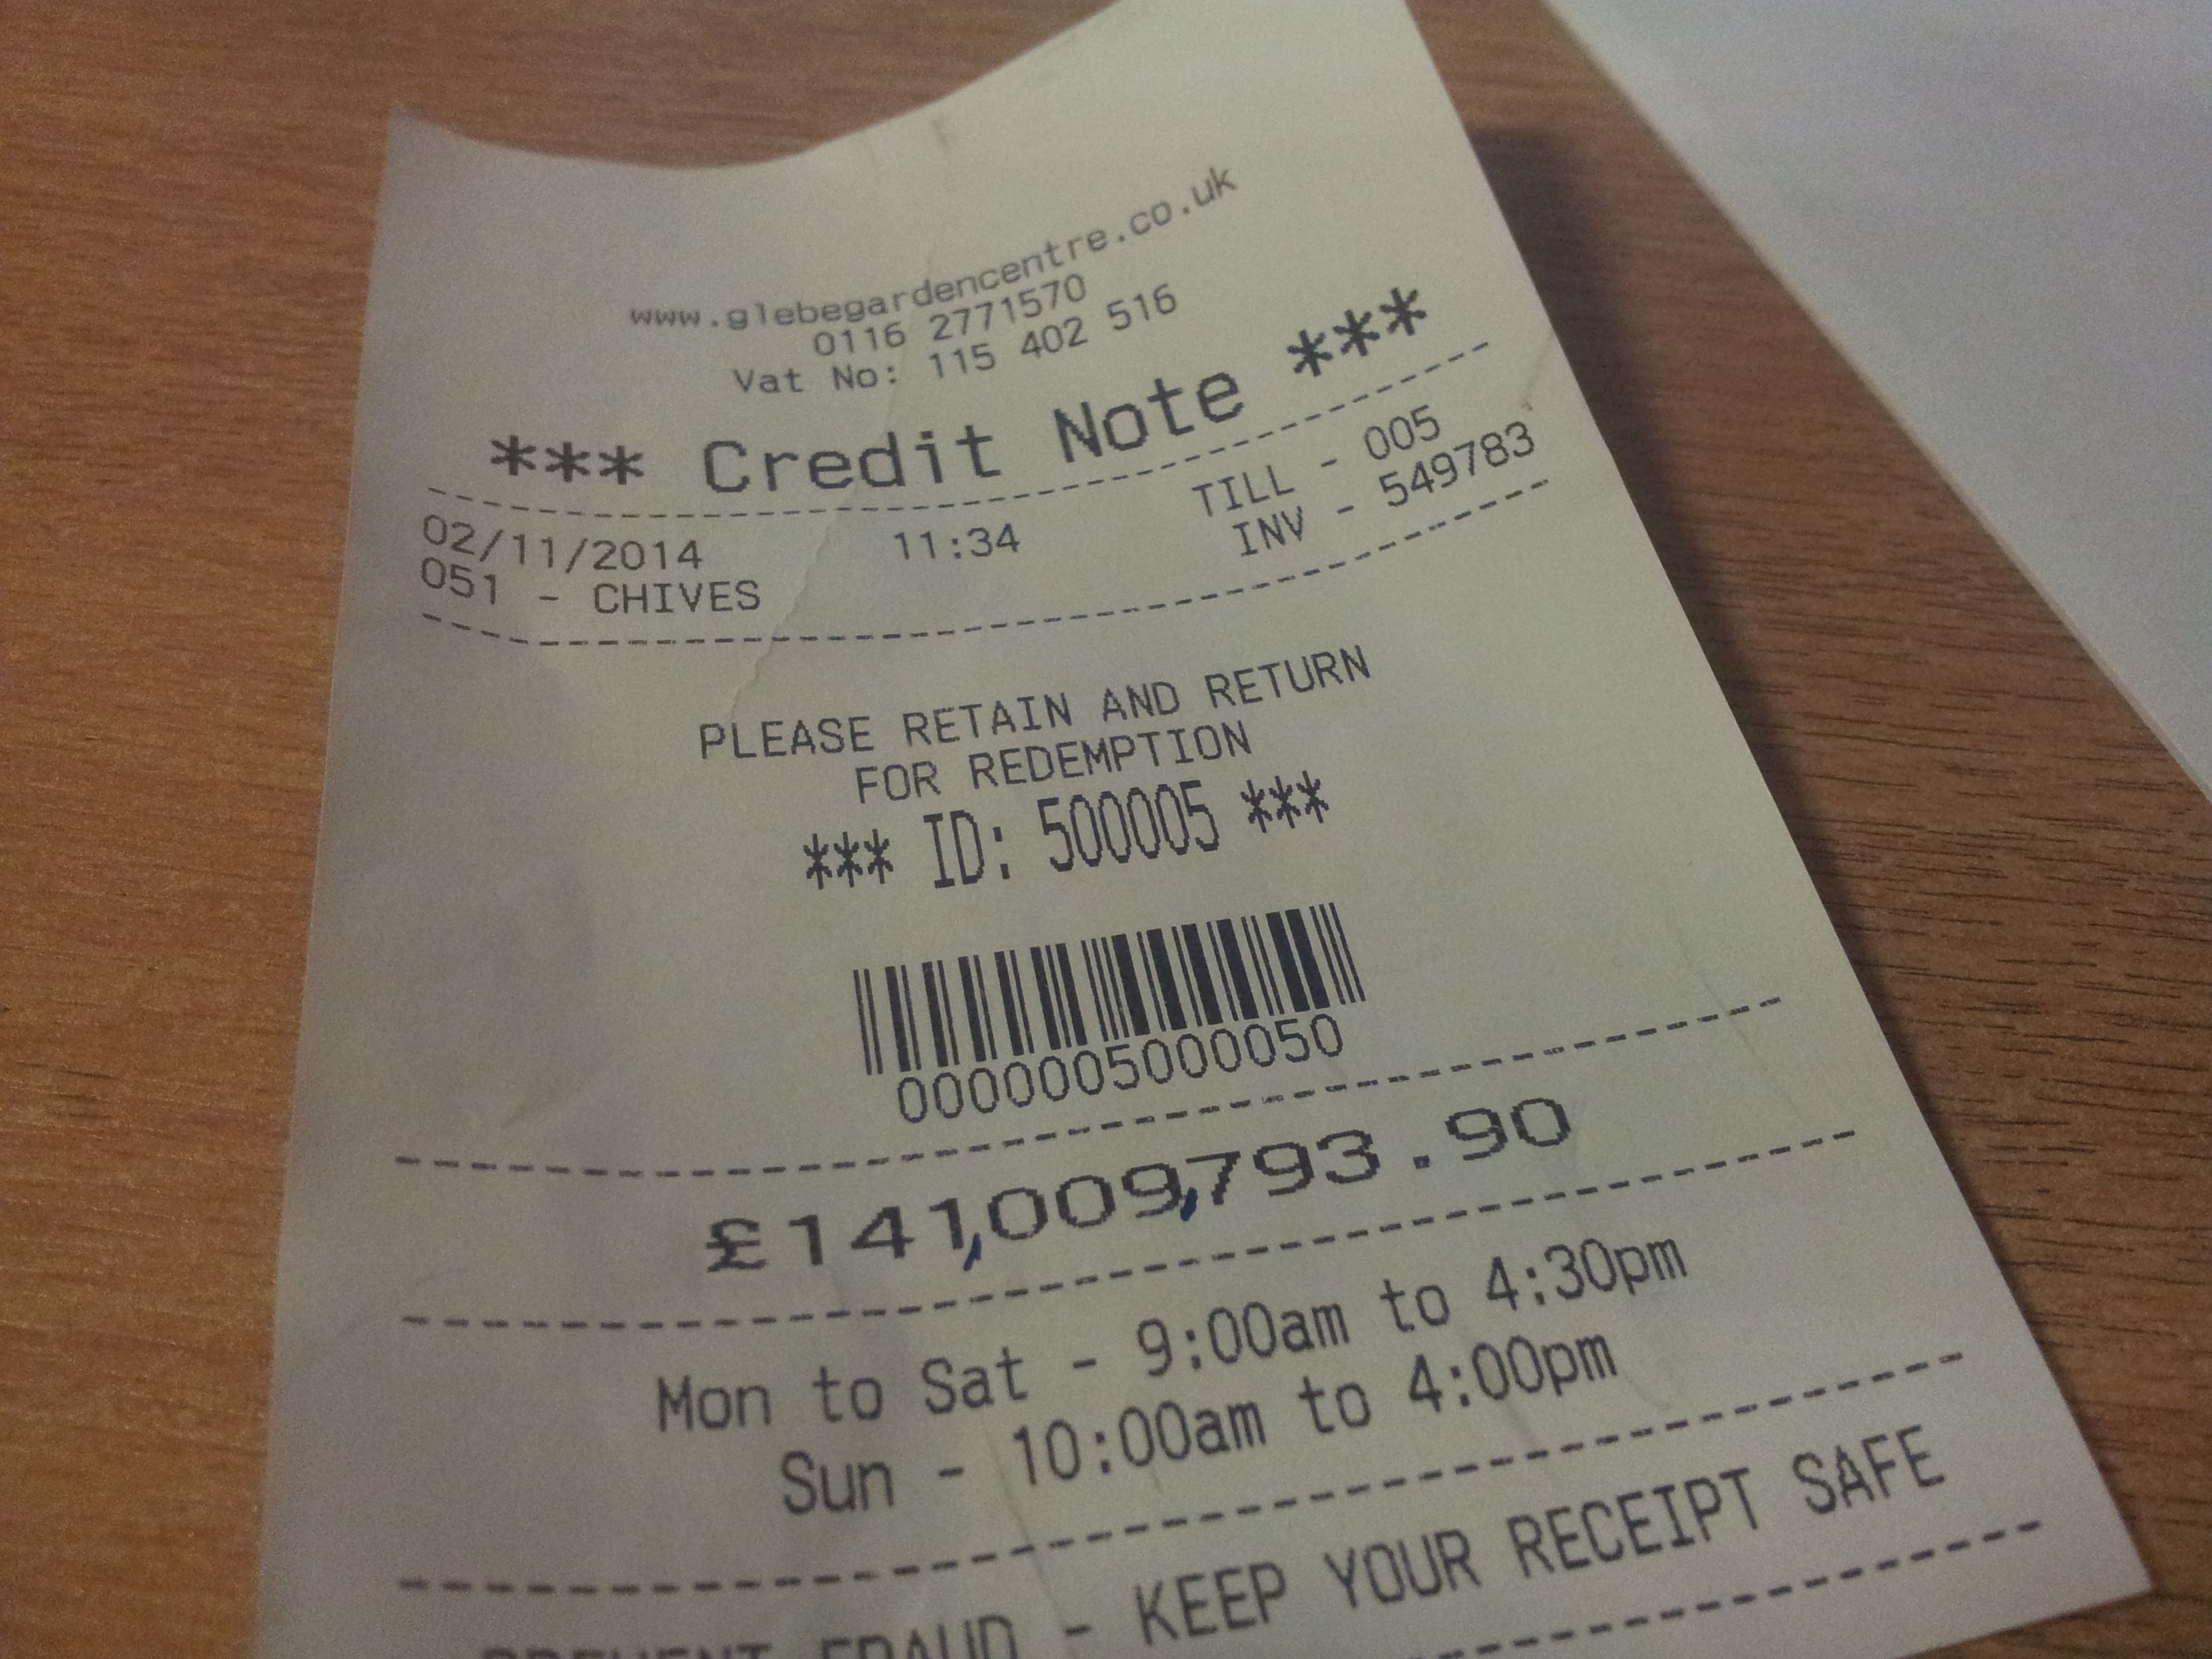 I think the cashier got a bit carried away. Credit note